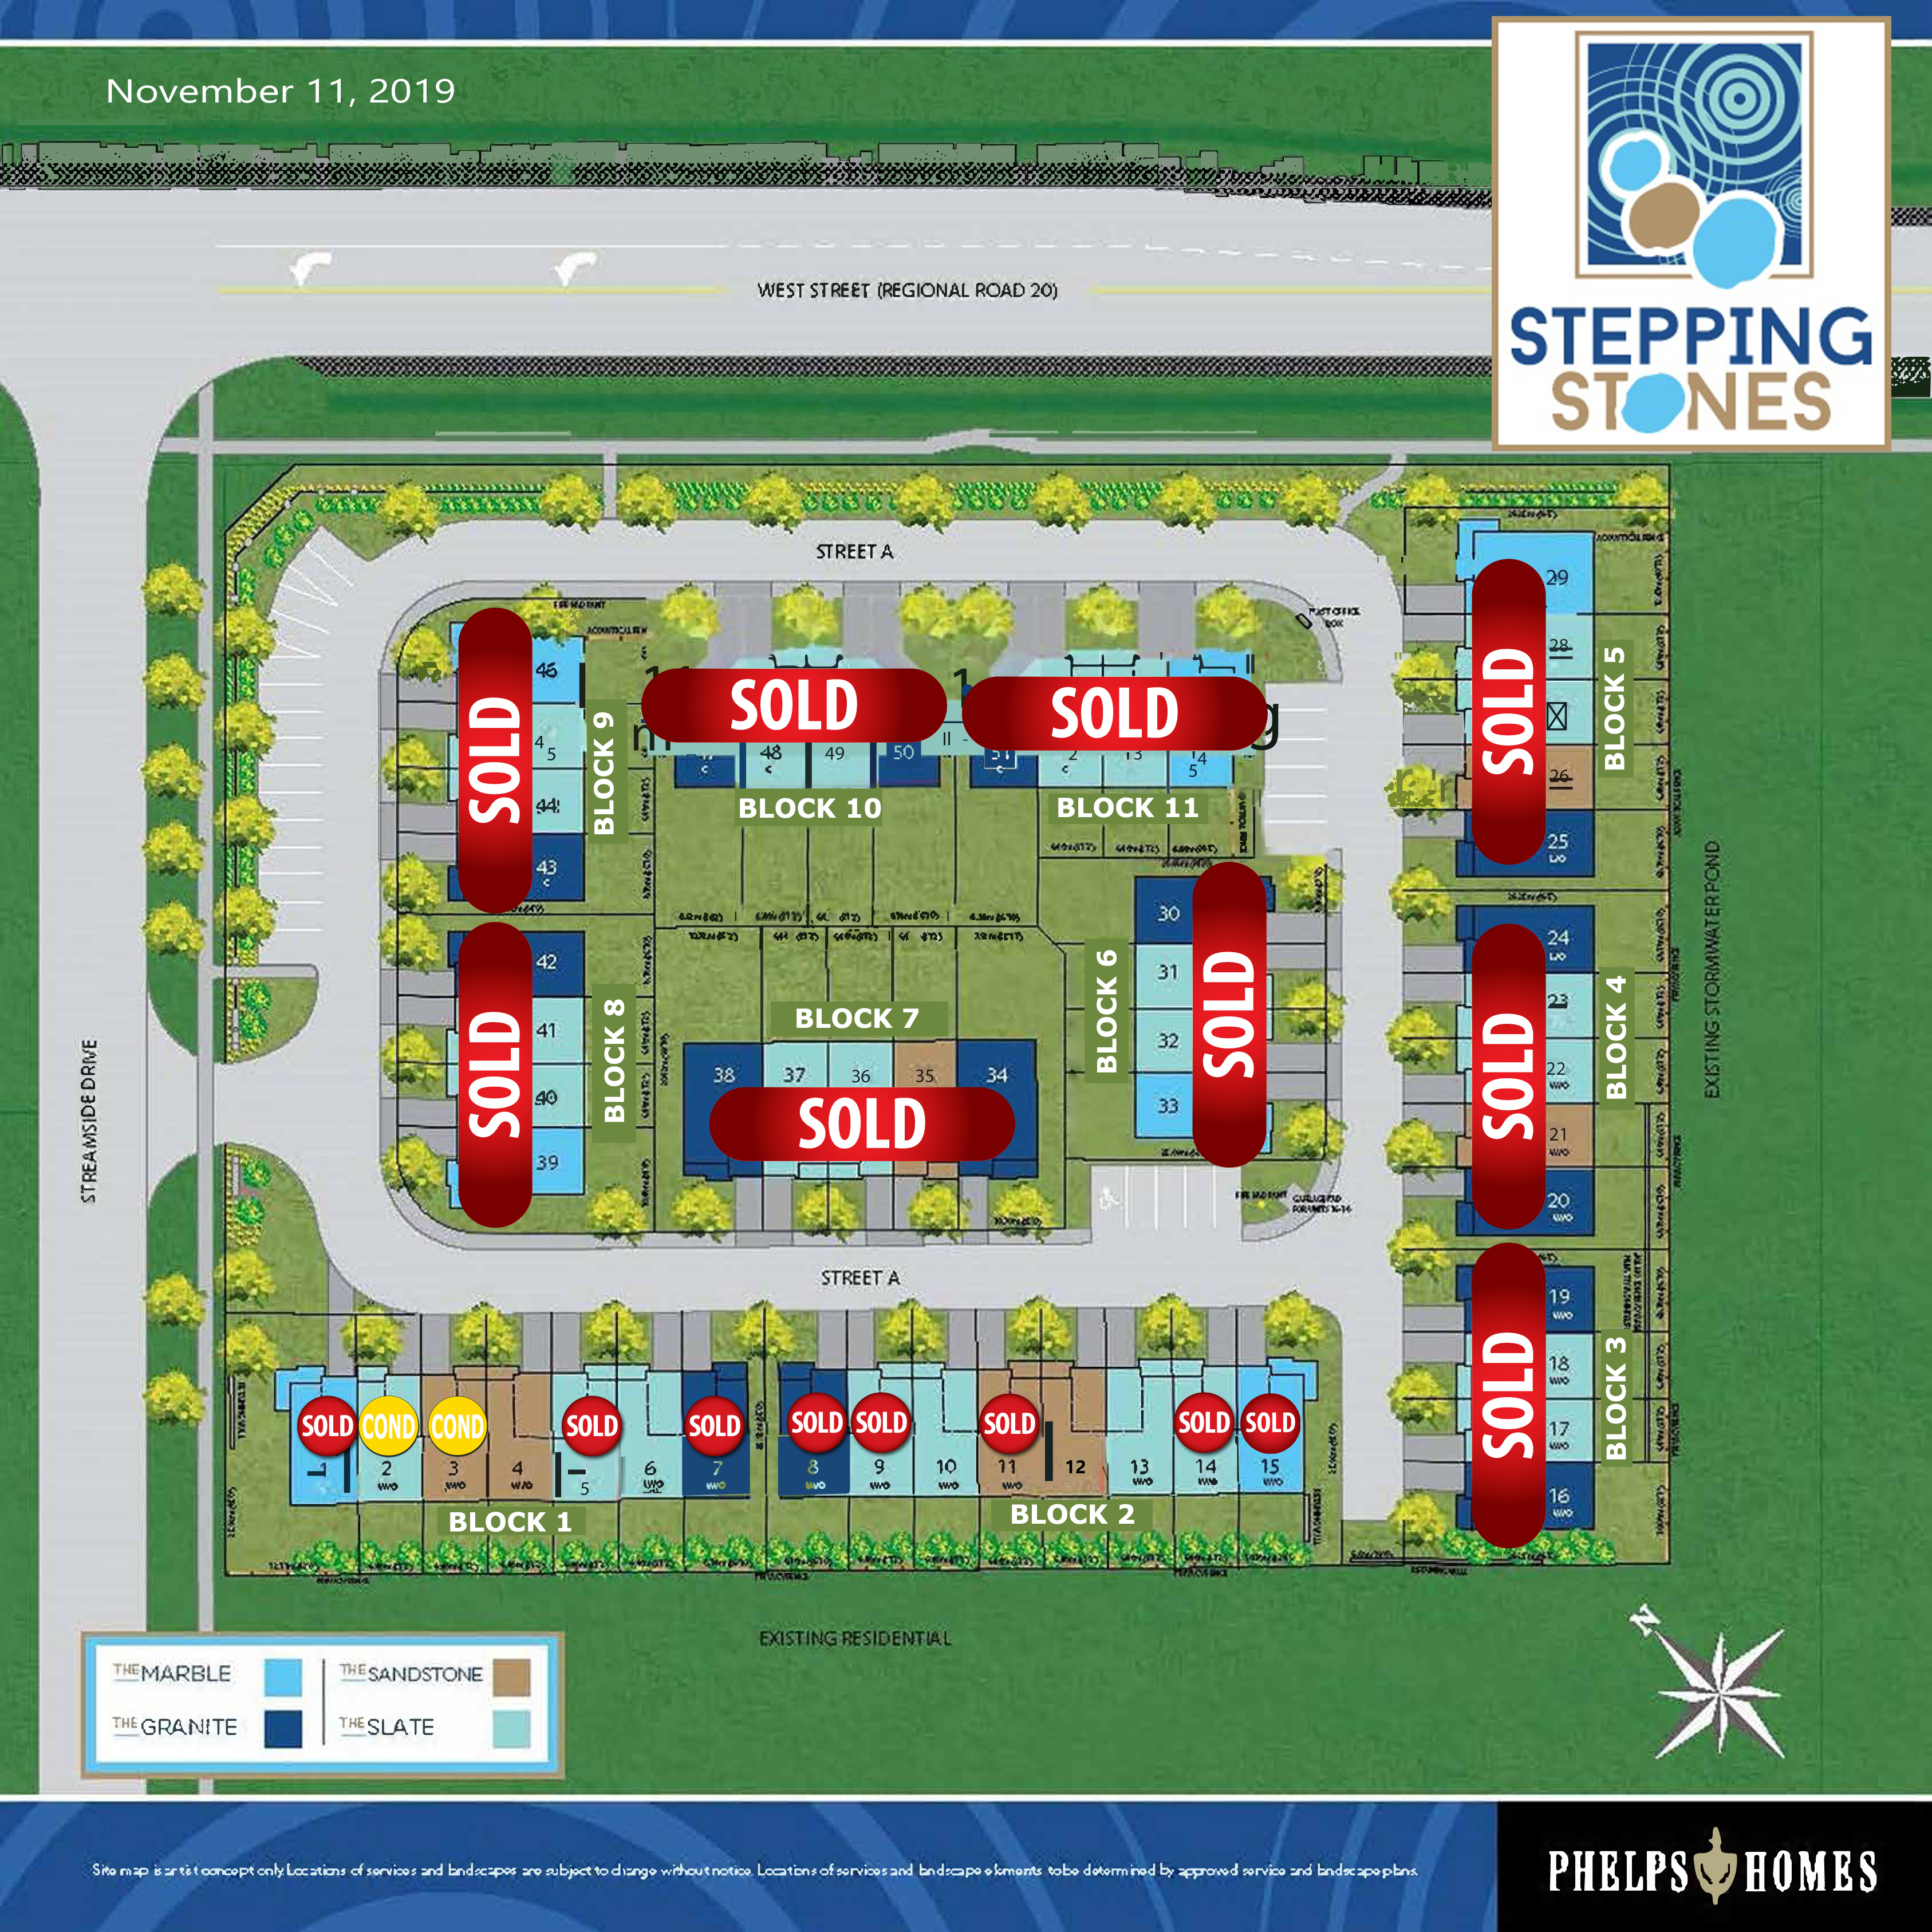 Stepping Stones Site Plan - 11.11